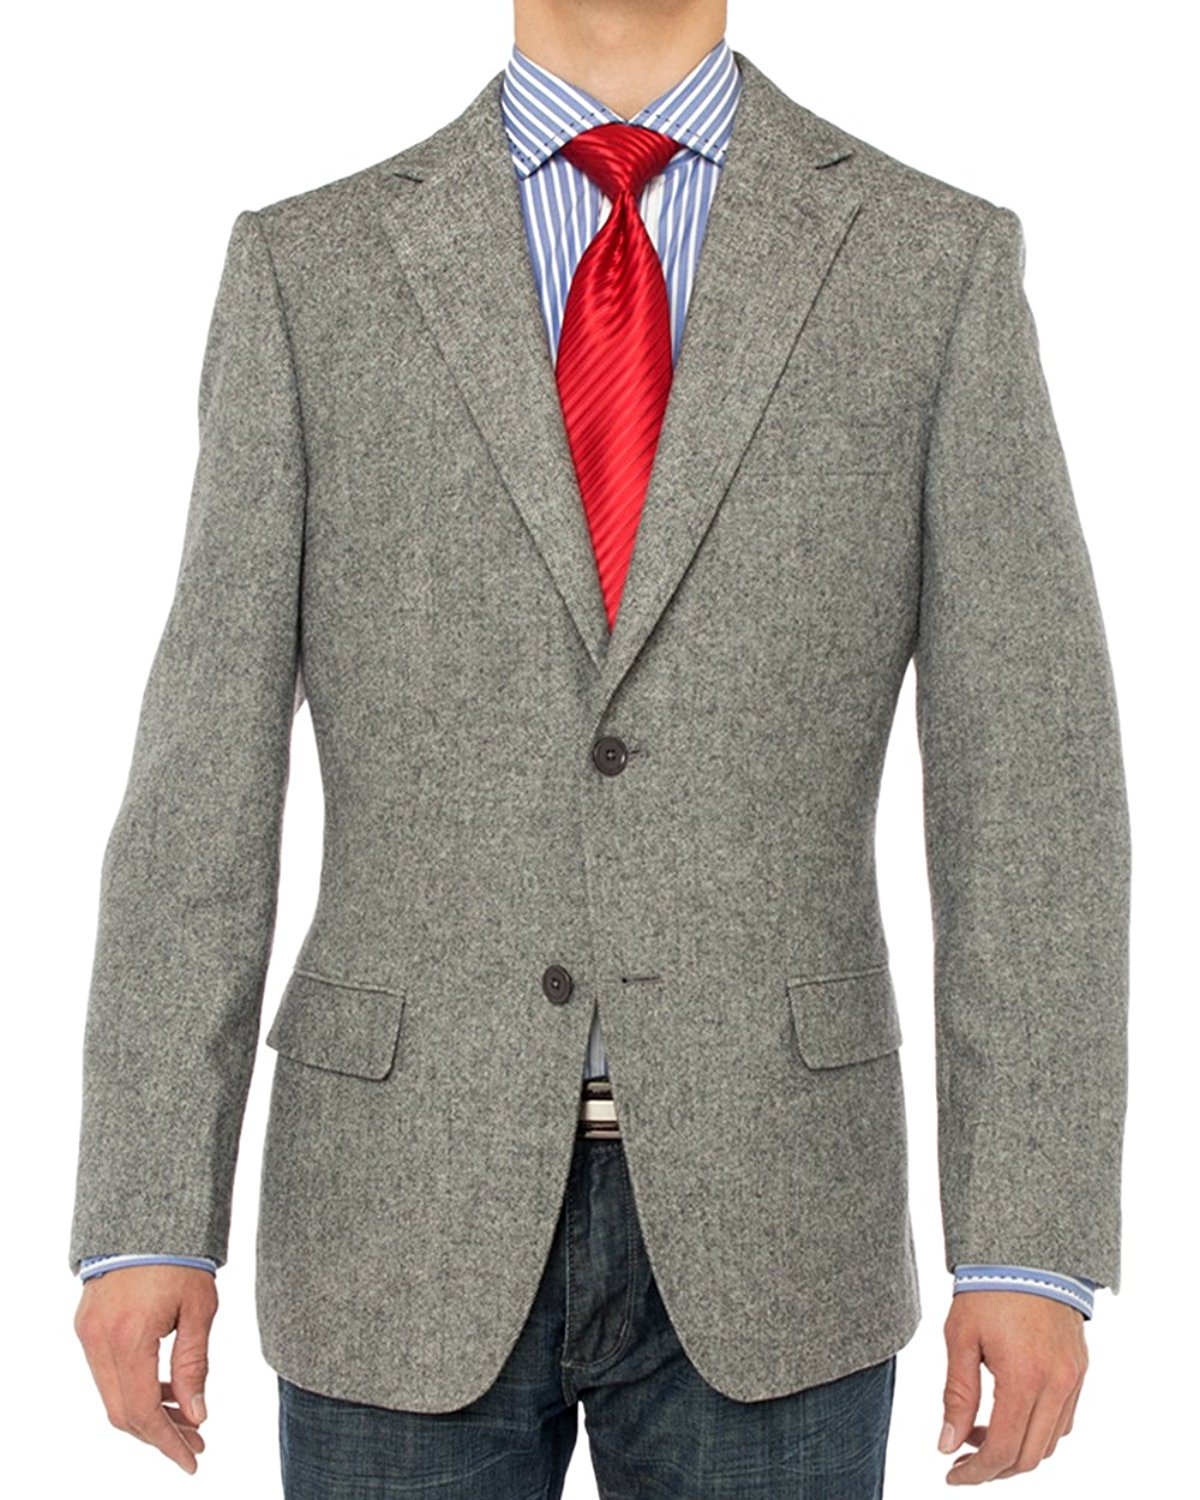 dd60578894a Get Quotations · Luciano Natazzi Men s Camel Hair Blazer Modern Fit Suit  Jacket